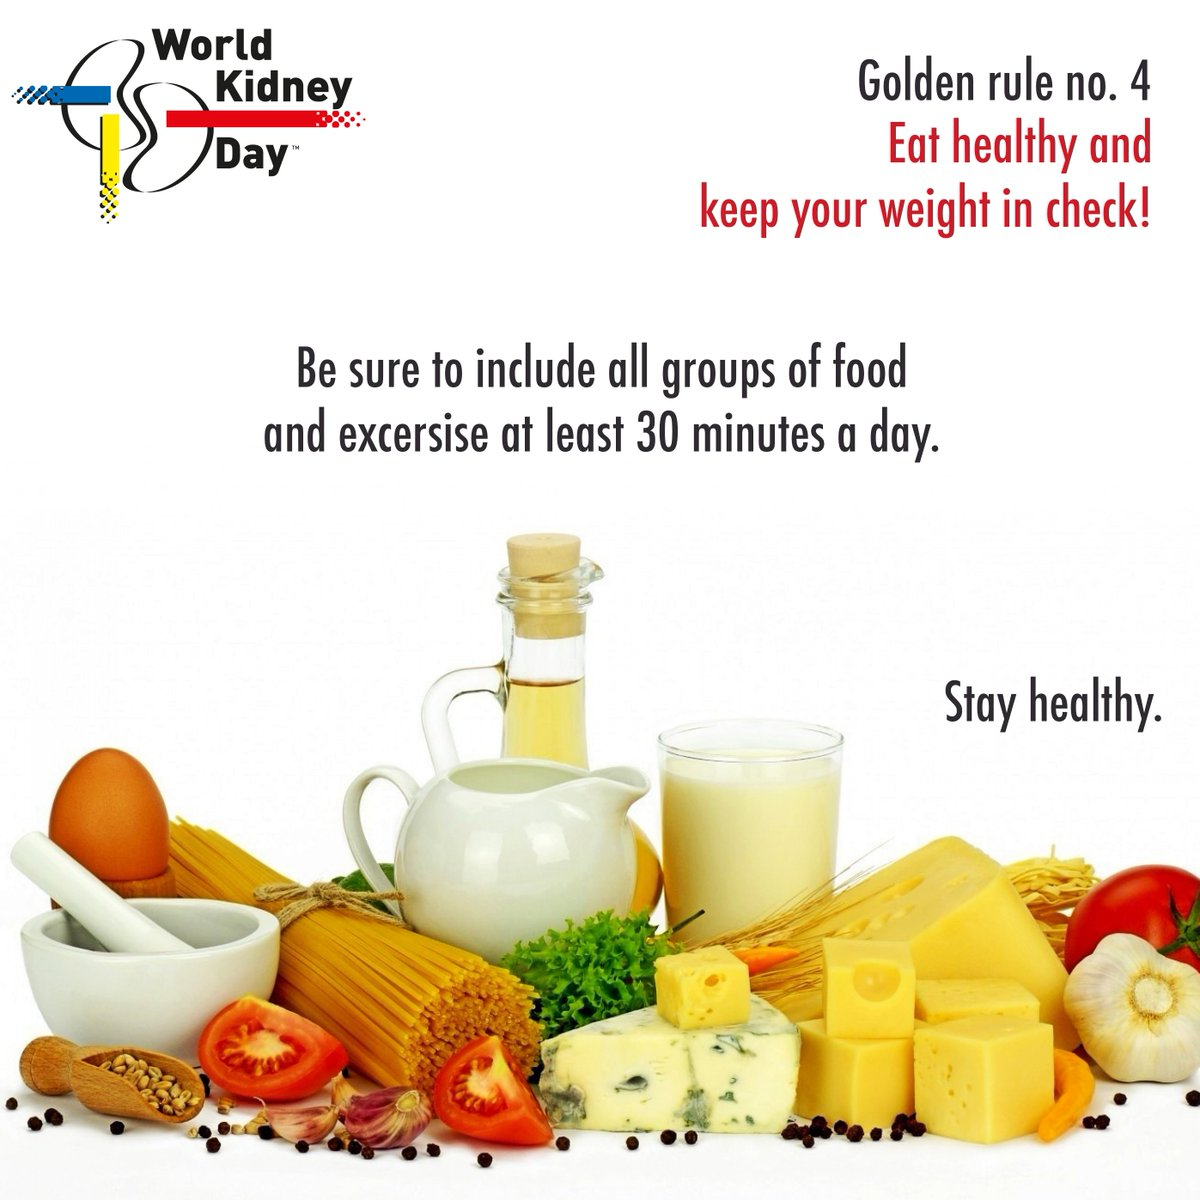 Ifkf On Twitter Do You Know That Proper Nutrition And Exercise Are Key To Prevent Kidney Disease Move4kidneys 8goldenrules